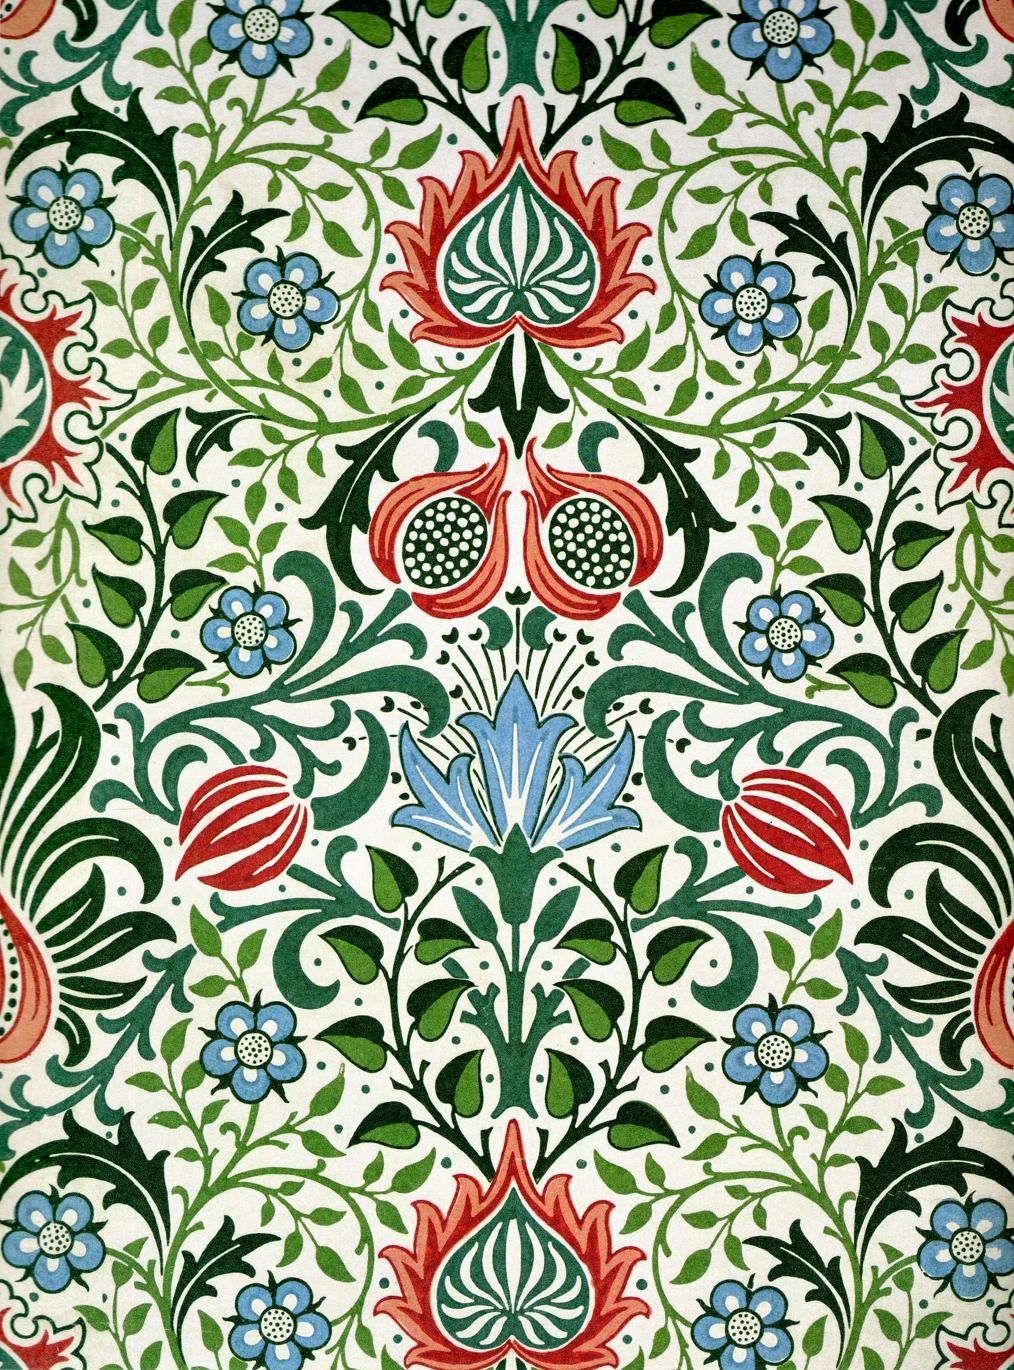 Persian design by William Morris Artist Morris, William